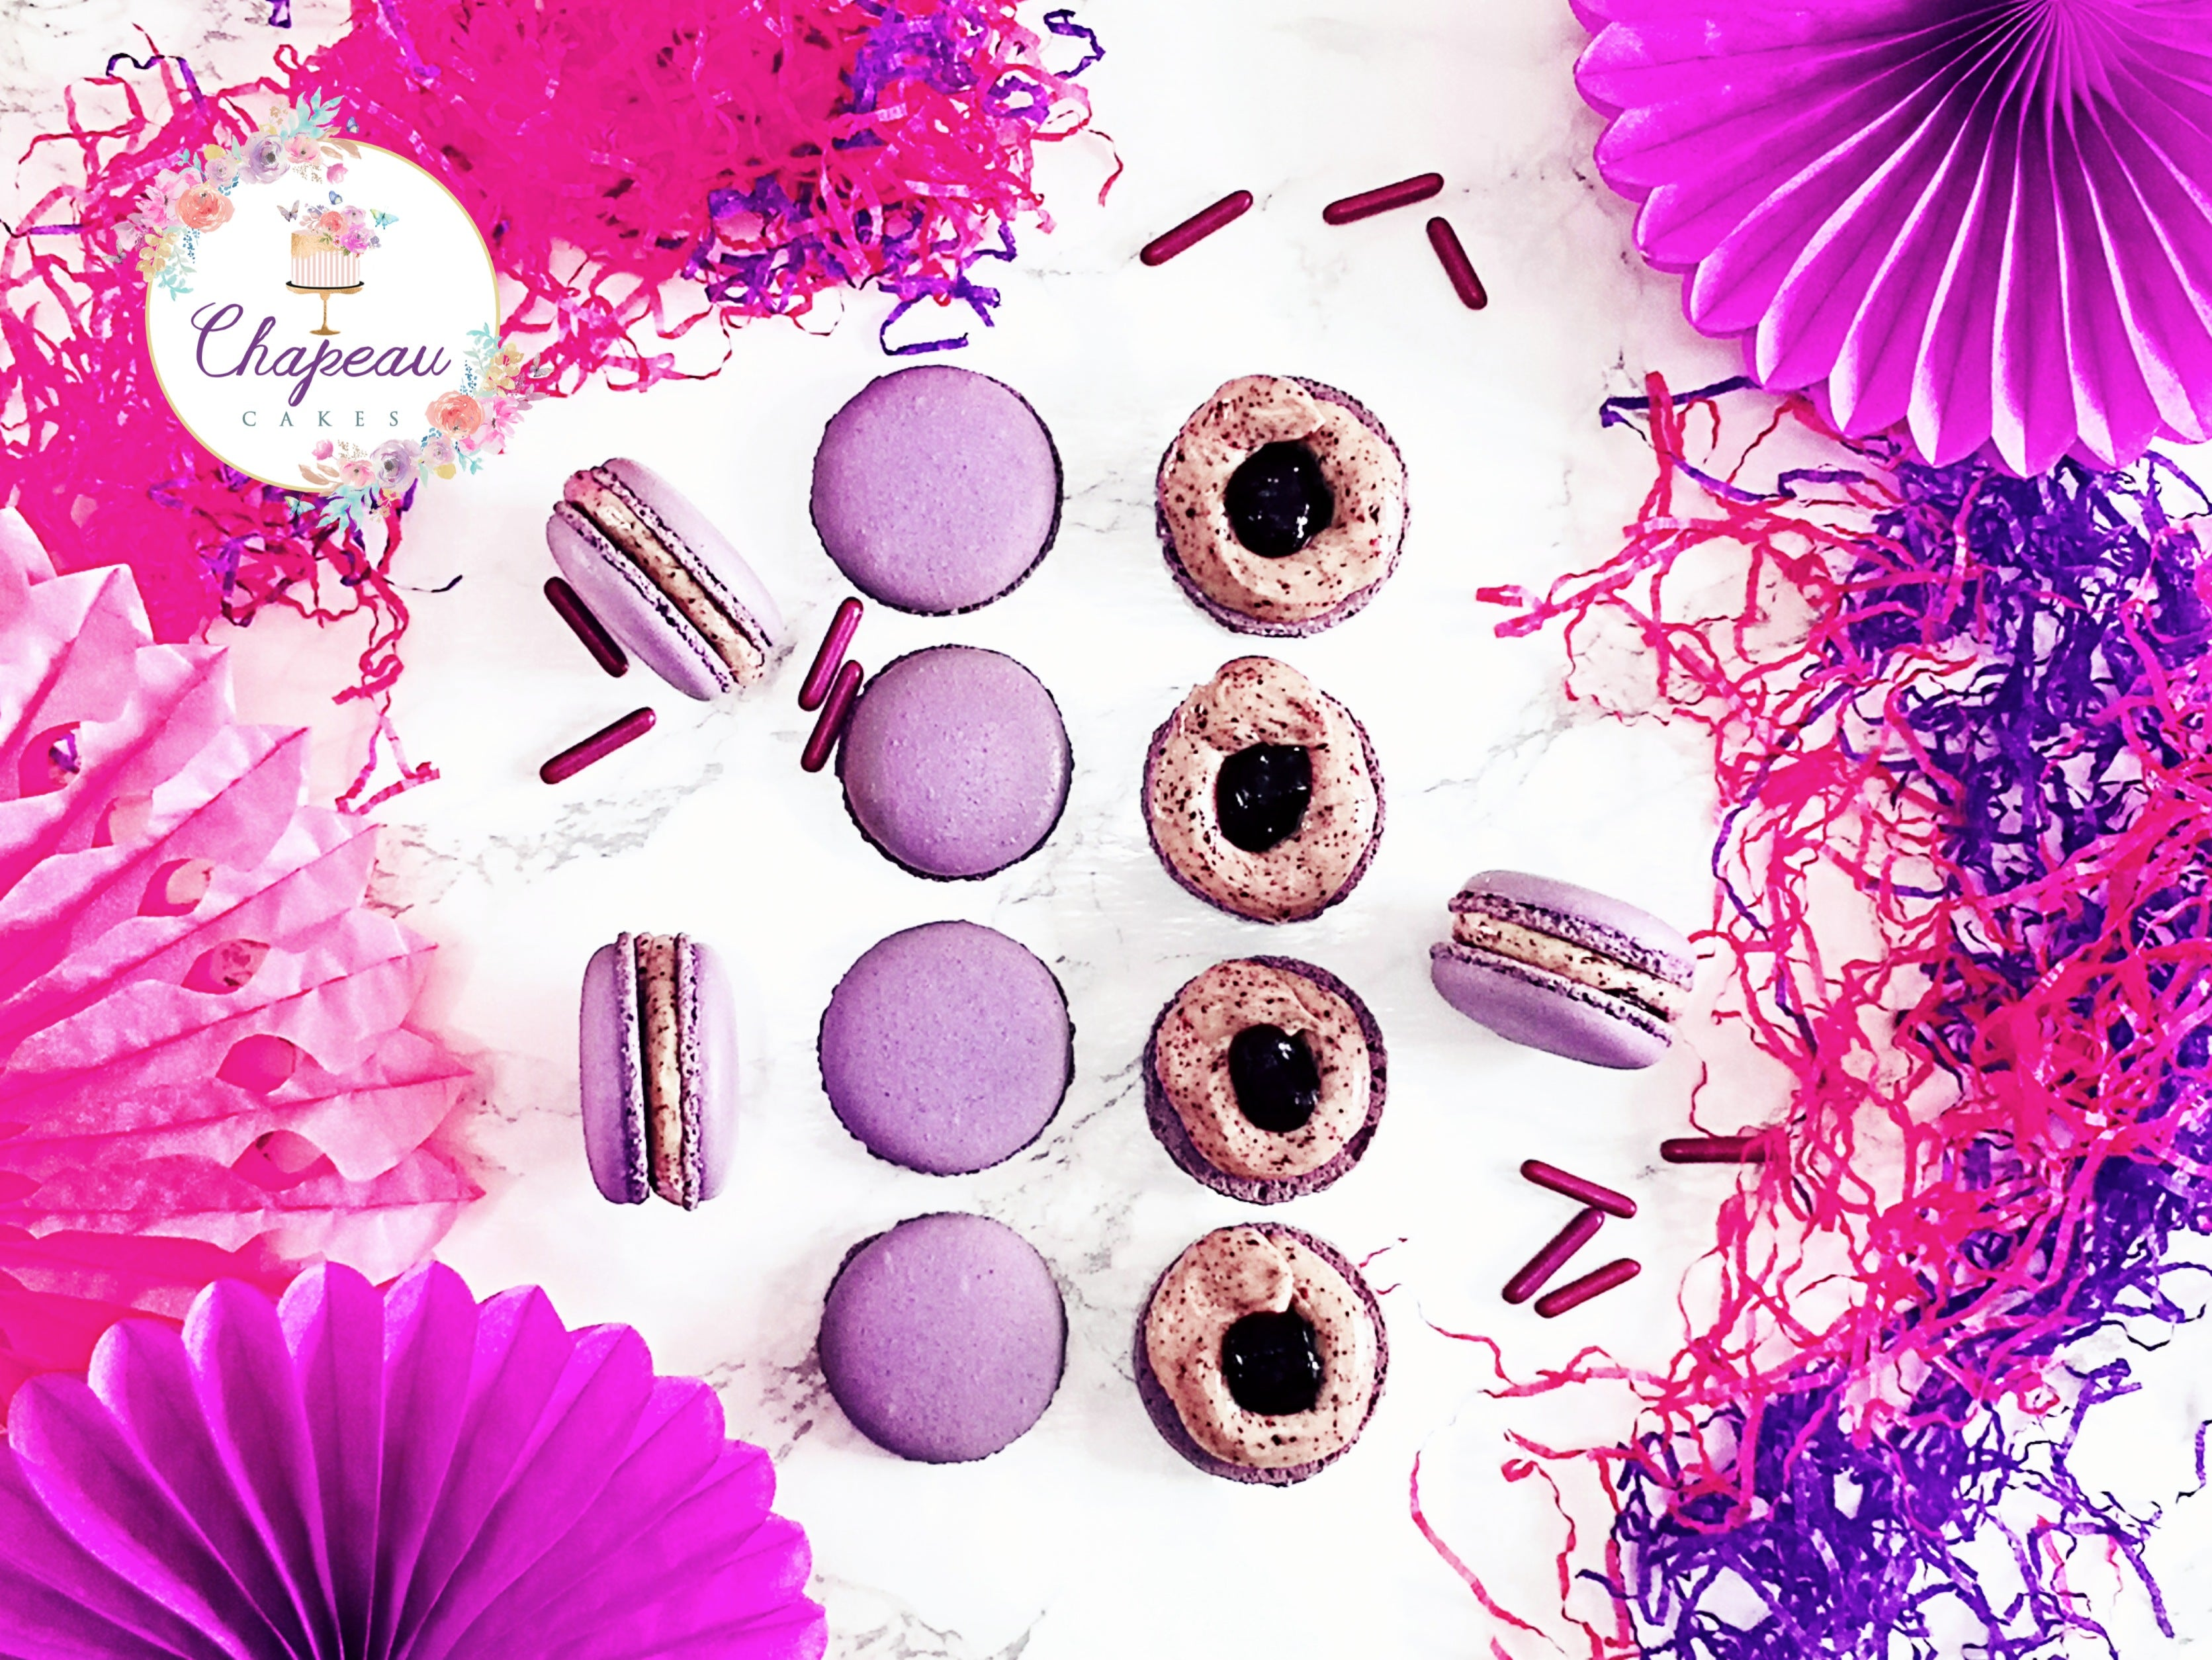 Delicious French Macarons | Free UK Delivery